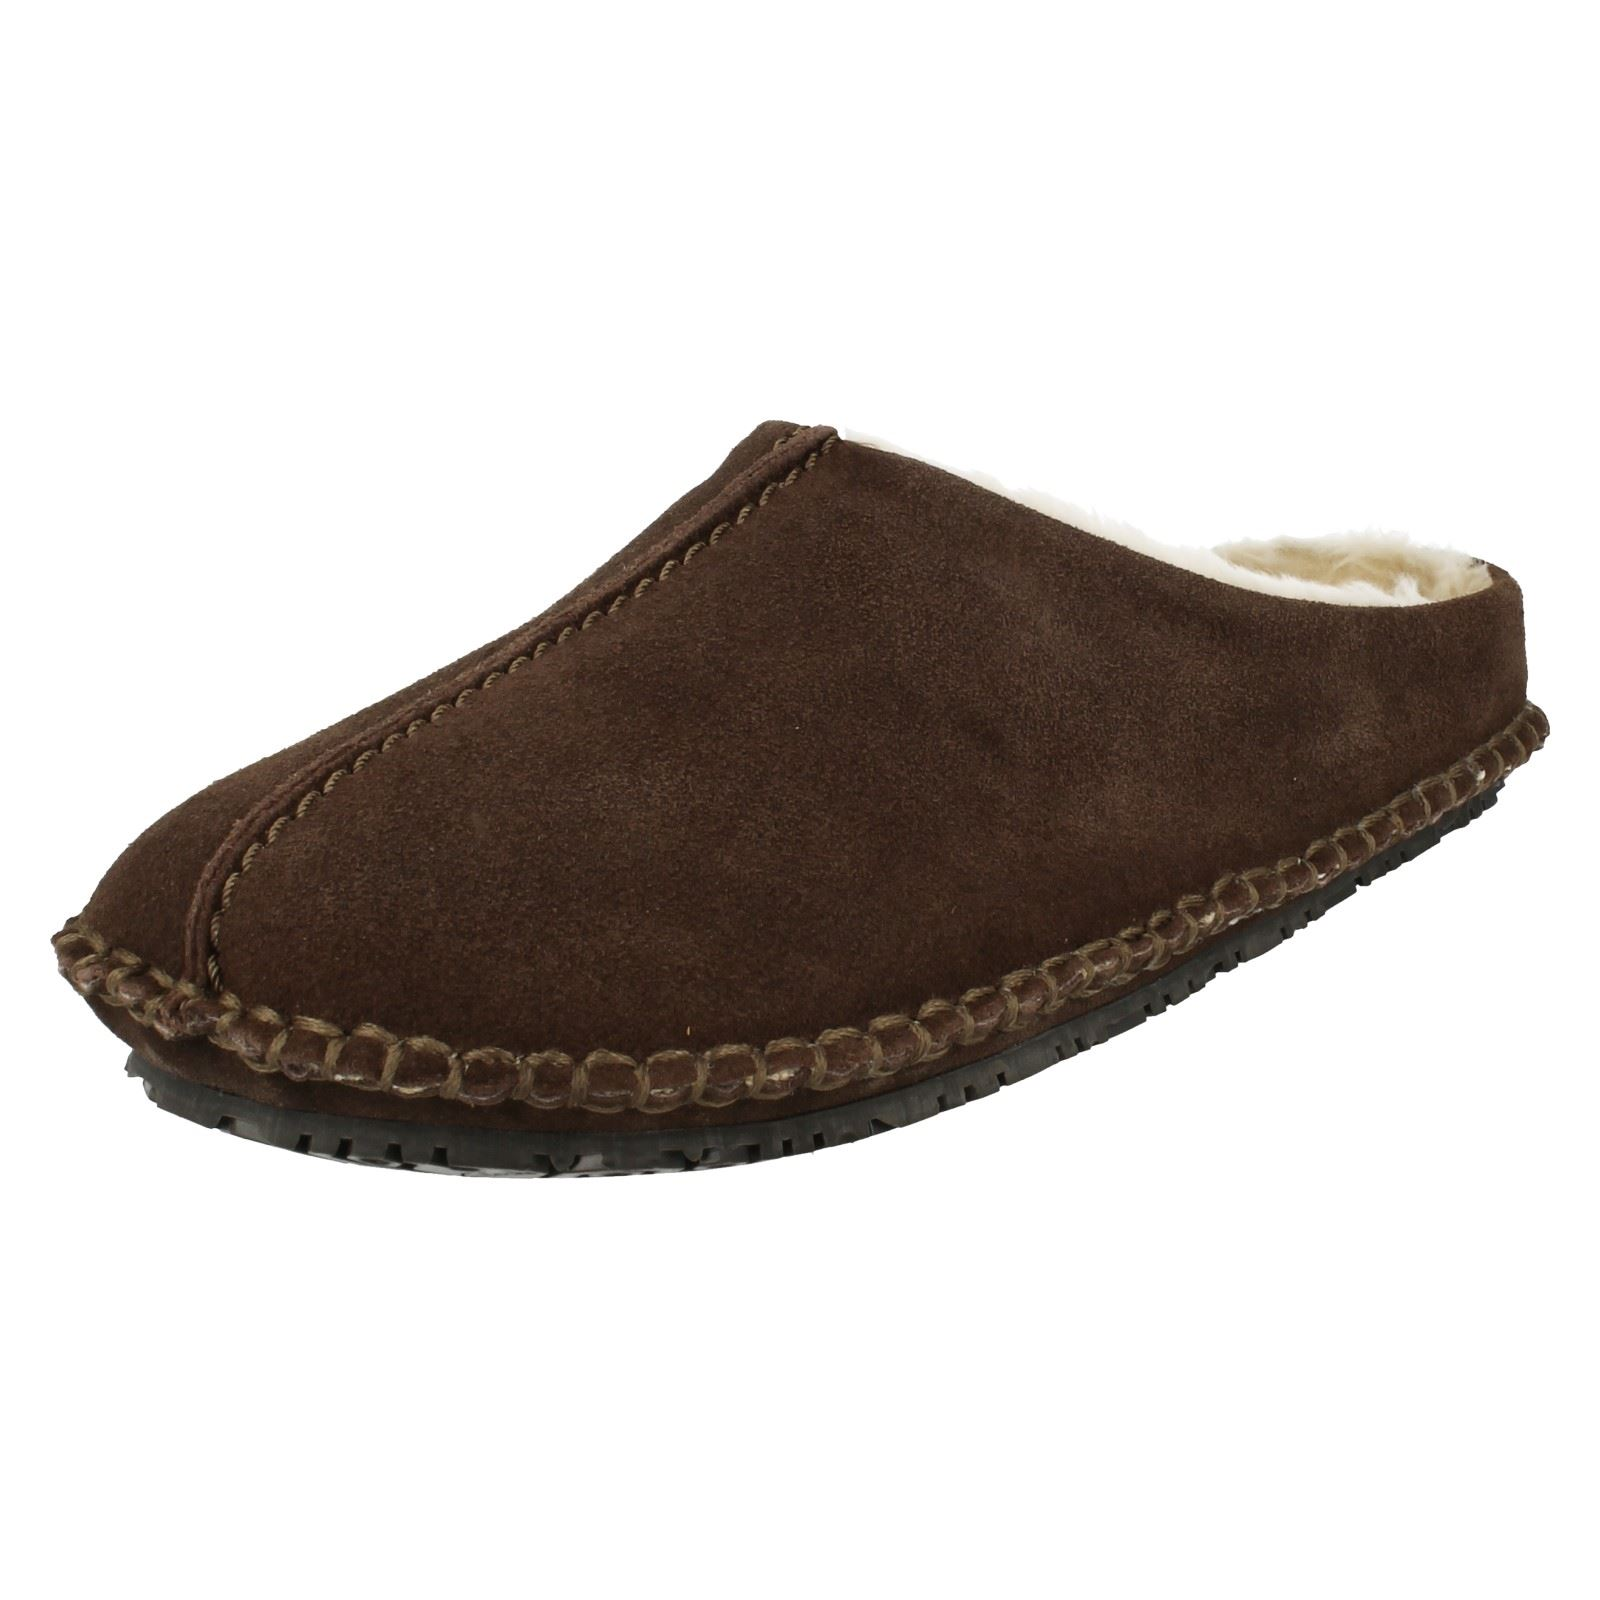 Mens Clarks Mule Slippers Kite Nordic